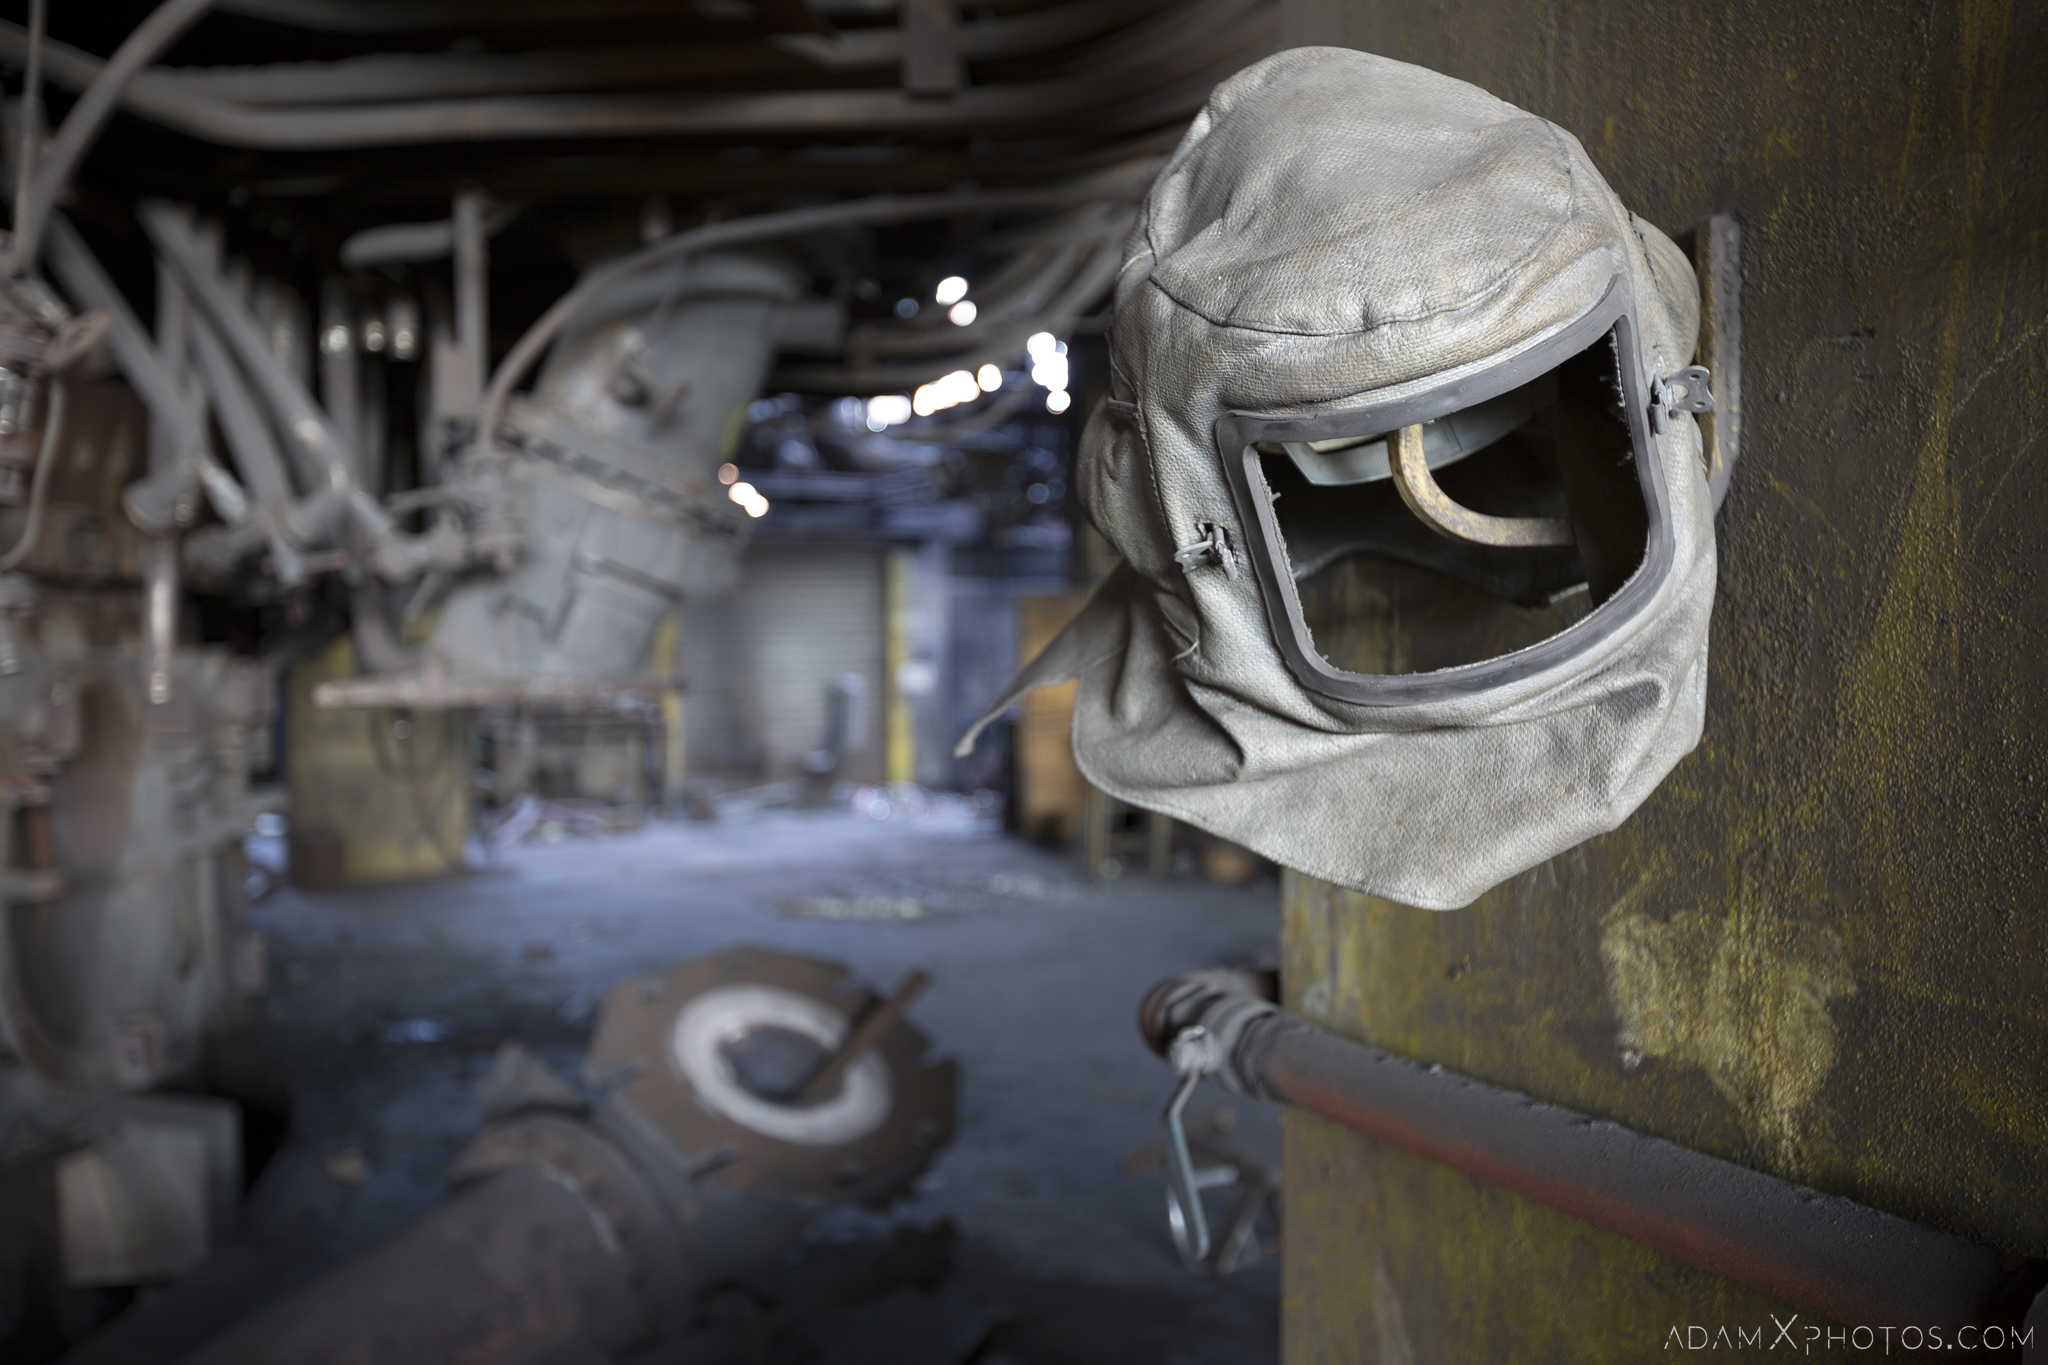 Welder's mask Haut Fourneau B HFB Blast Furnace Steelworks Adam X Urban Exploration Belgium Access 2017 Abandoned decay lost forgotten derelict location creepy haunting eerie